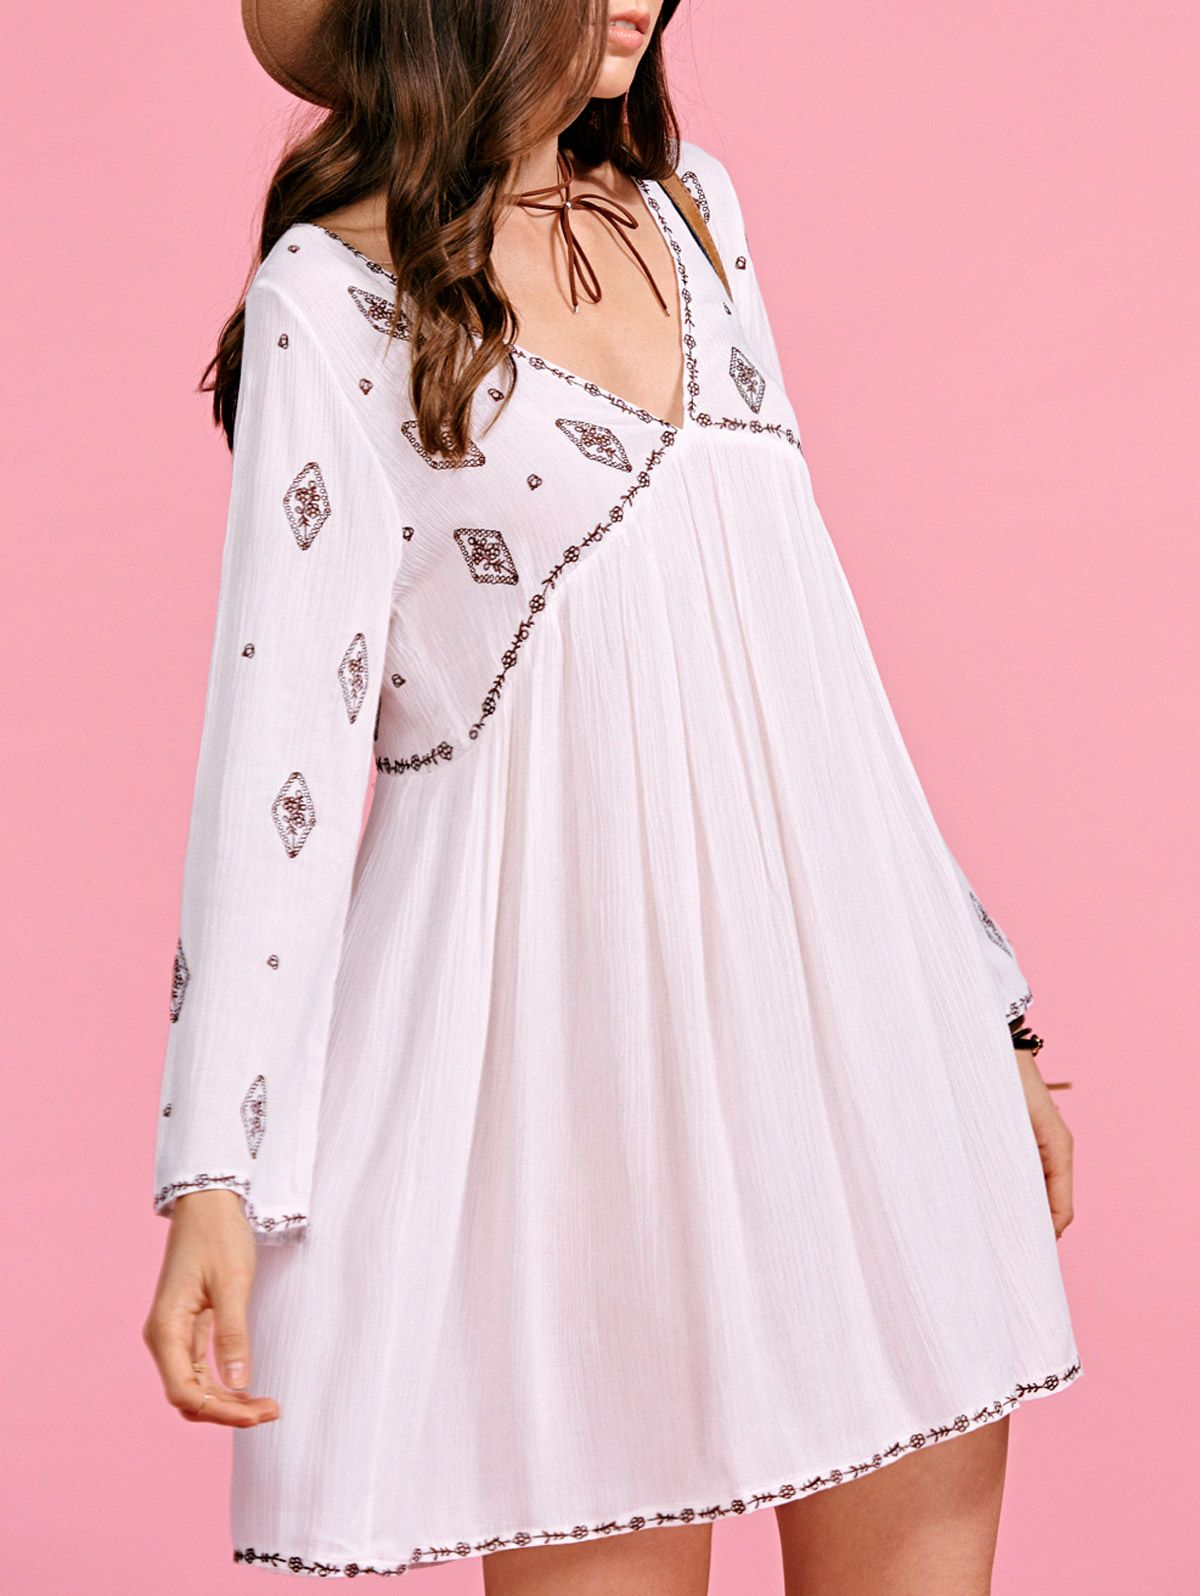 Ethnic embroidery plunging neck long sleeve dress sleeved dress